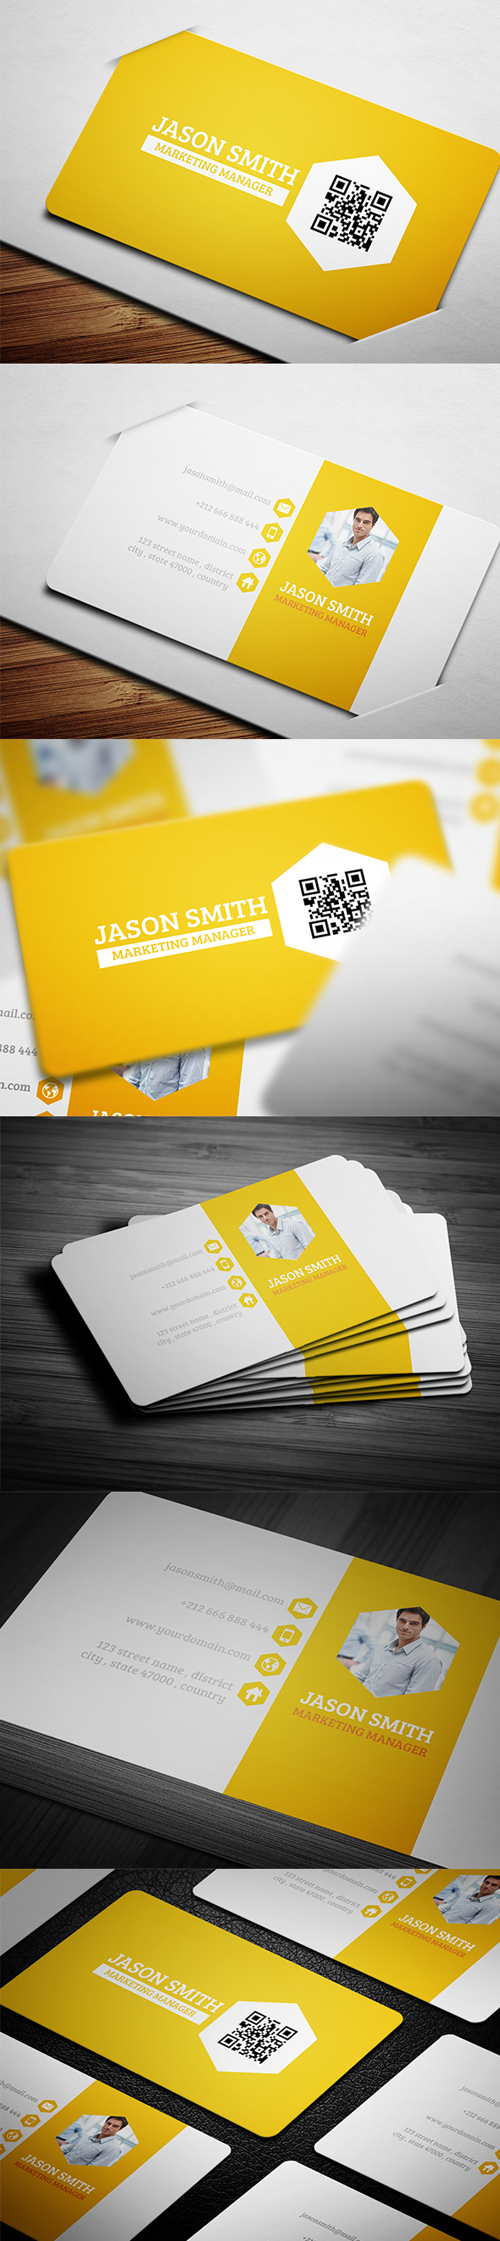 business cards template design - 4